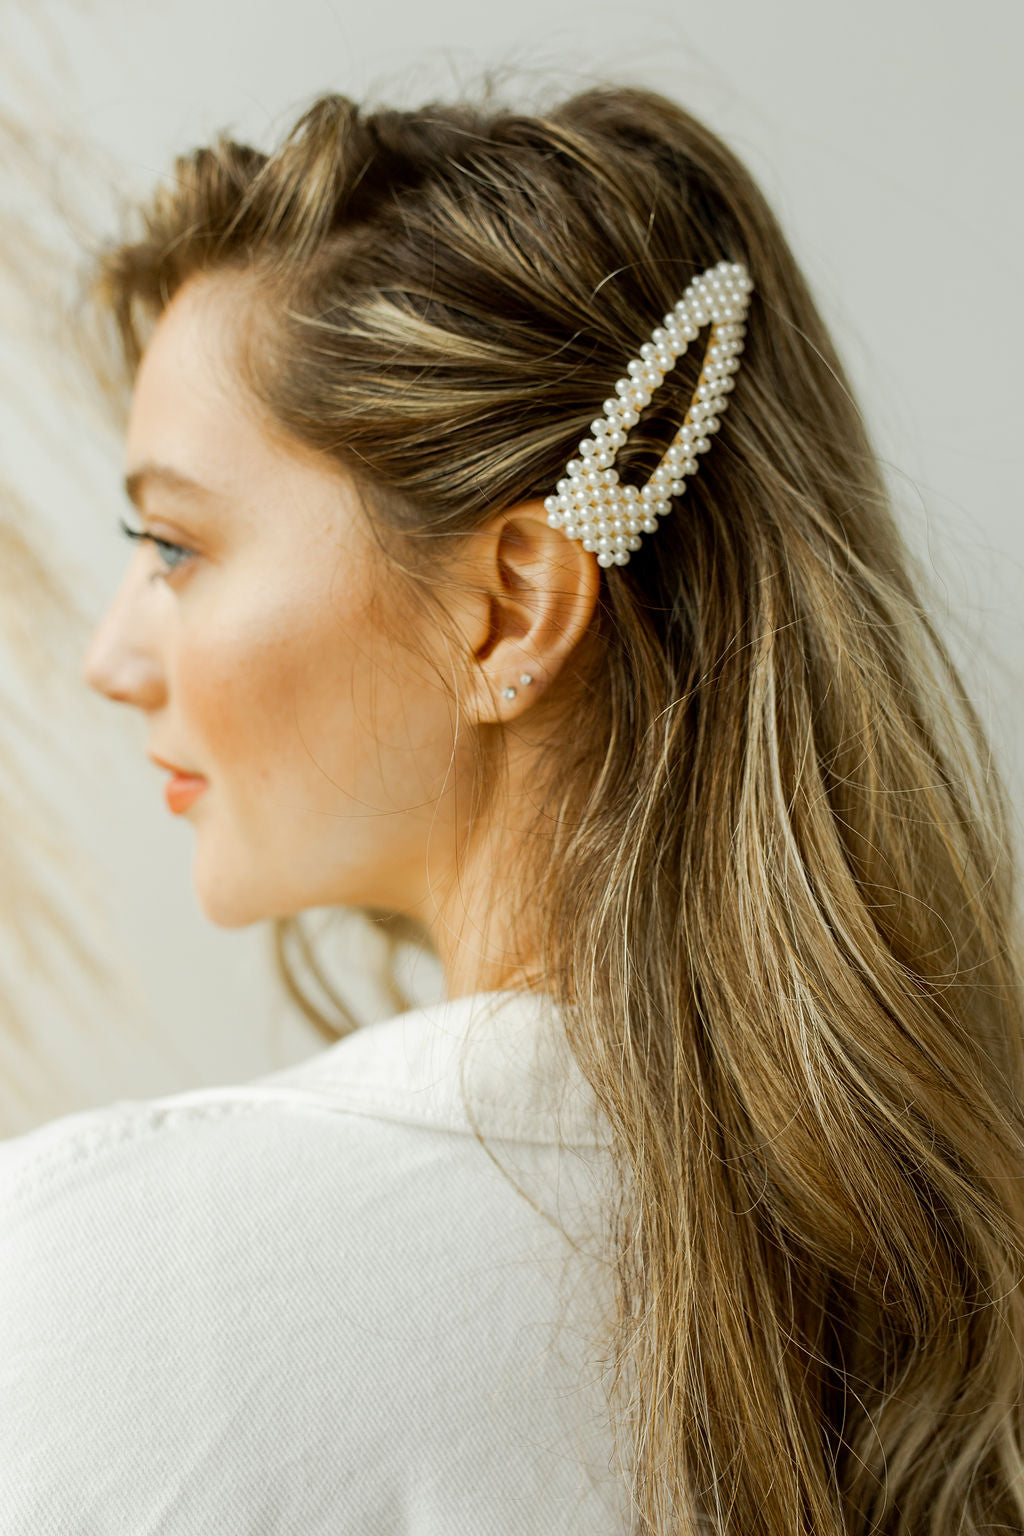 mode, mother of pearl hair clip